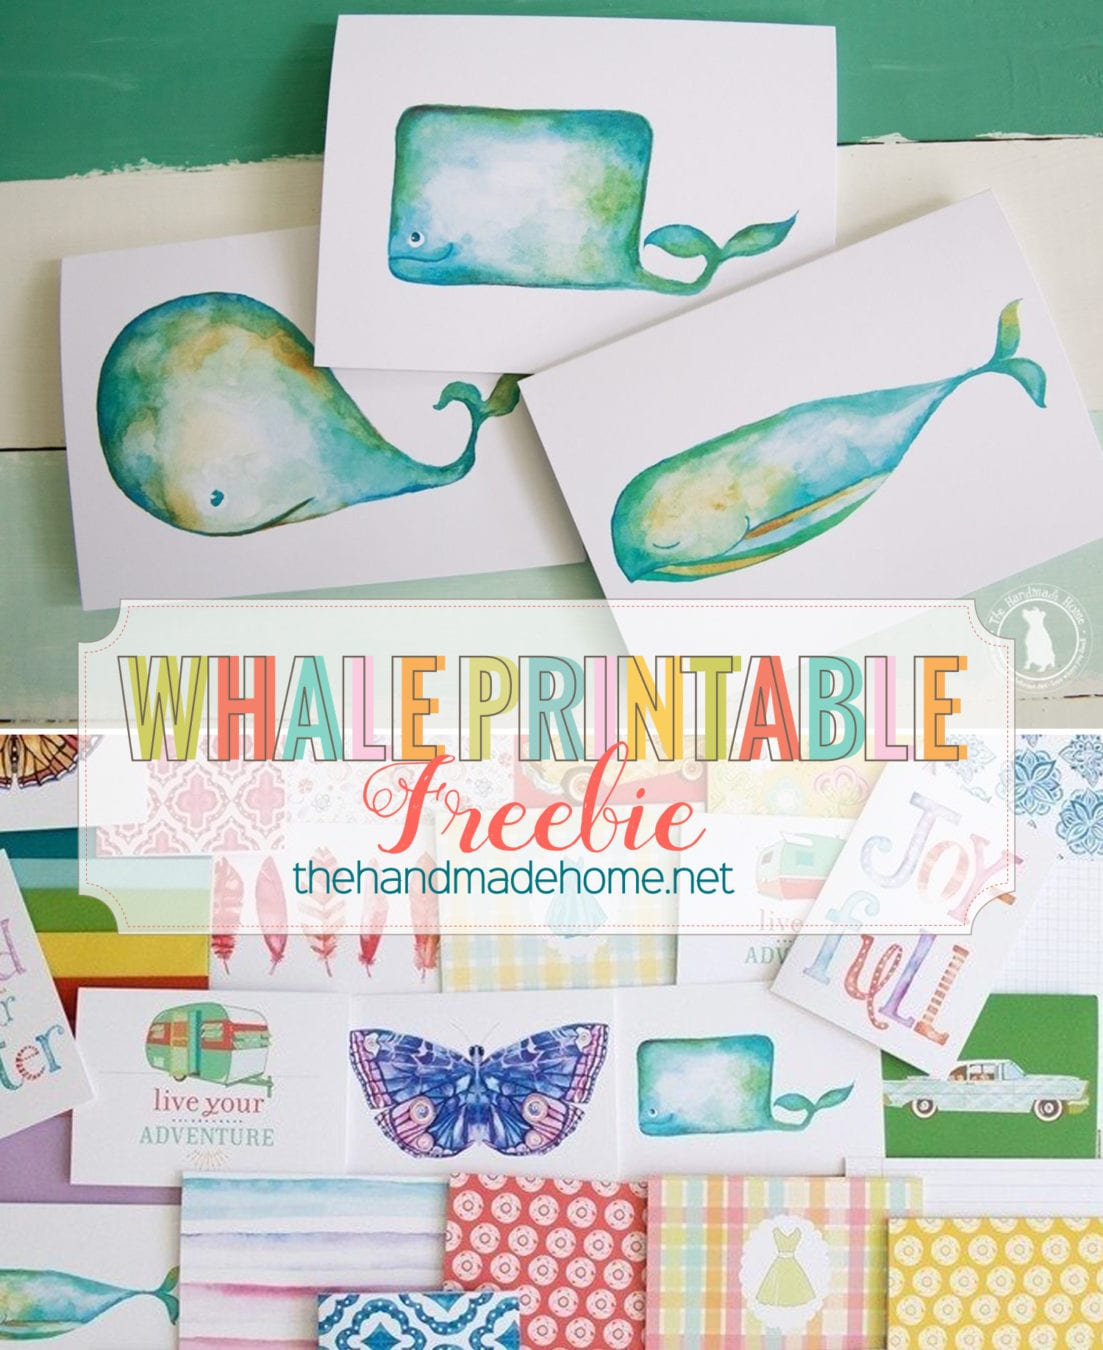 graphic about Printable Freebie named whale of a story stationery freebie - The Selfmade Property